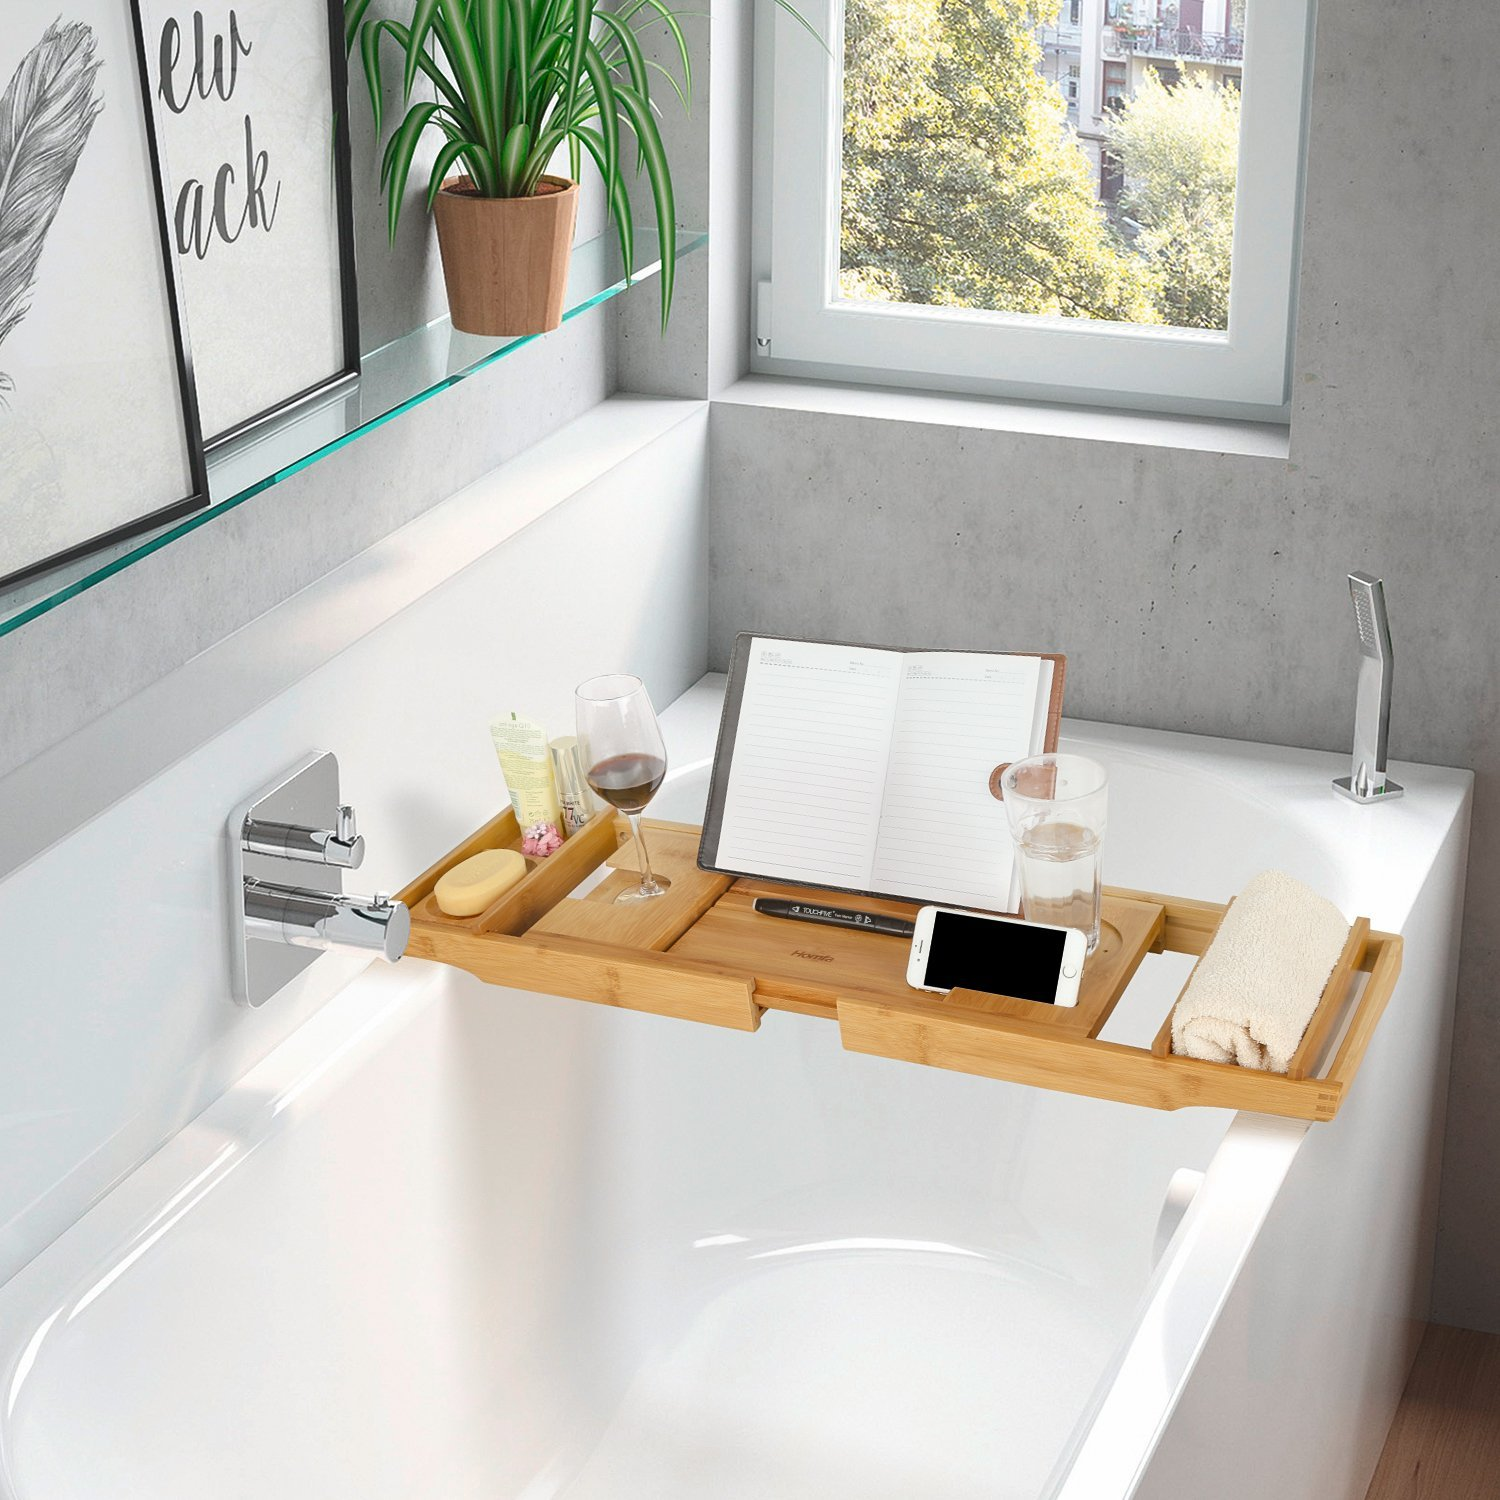 Bamboo Bathtub Tray – I NEED this for SERIOUS